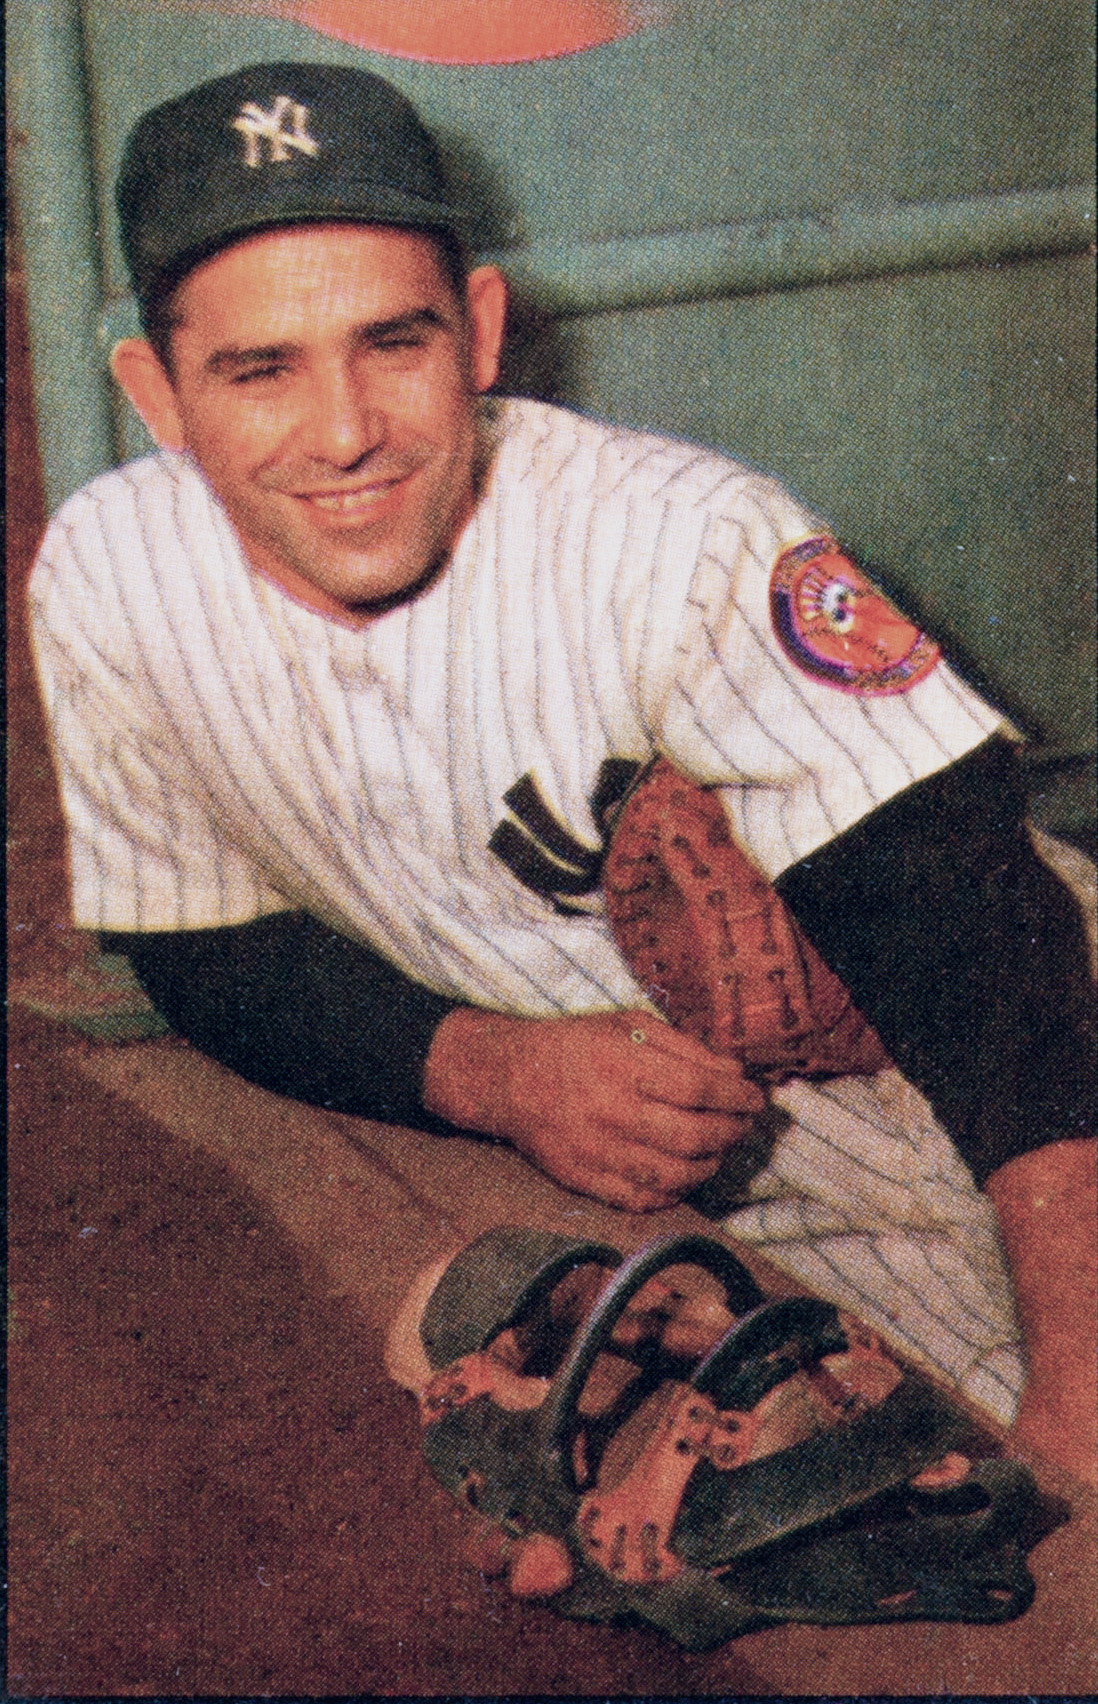 yogi berra 1953, american baseball player, baseball hall of fame, american league mvp, mlb baseball coach, baseball team manager, new york yankees, new york mets, houston astros, major league baseball awards, 1951 mlb mvp